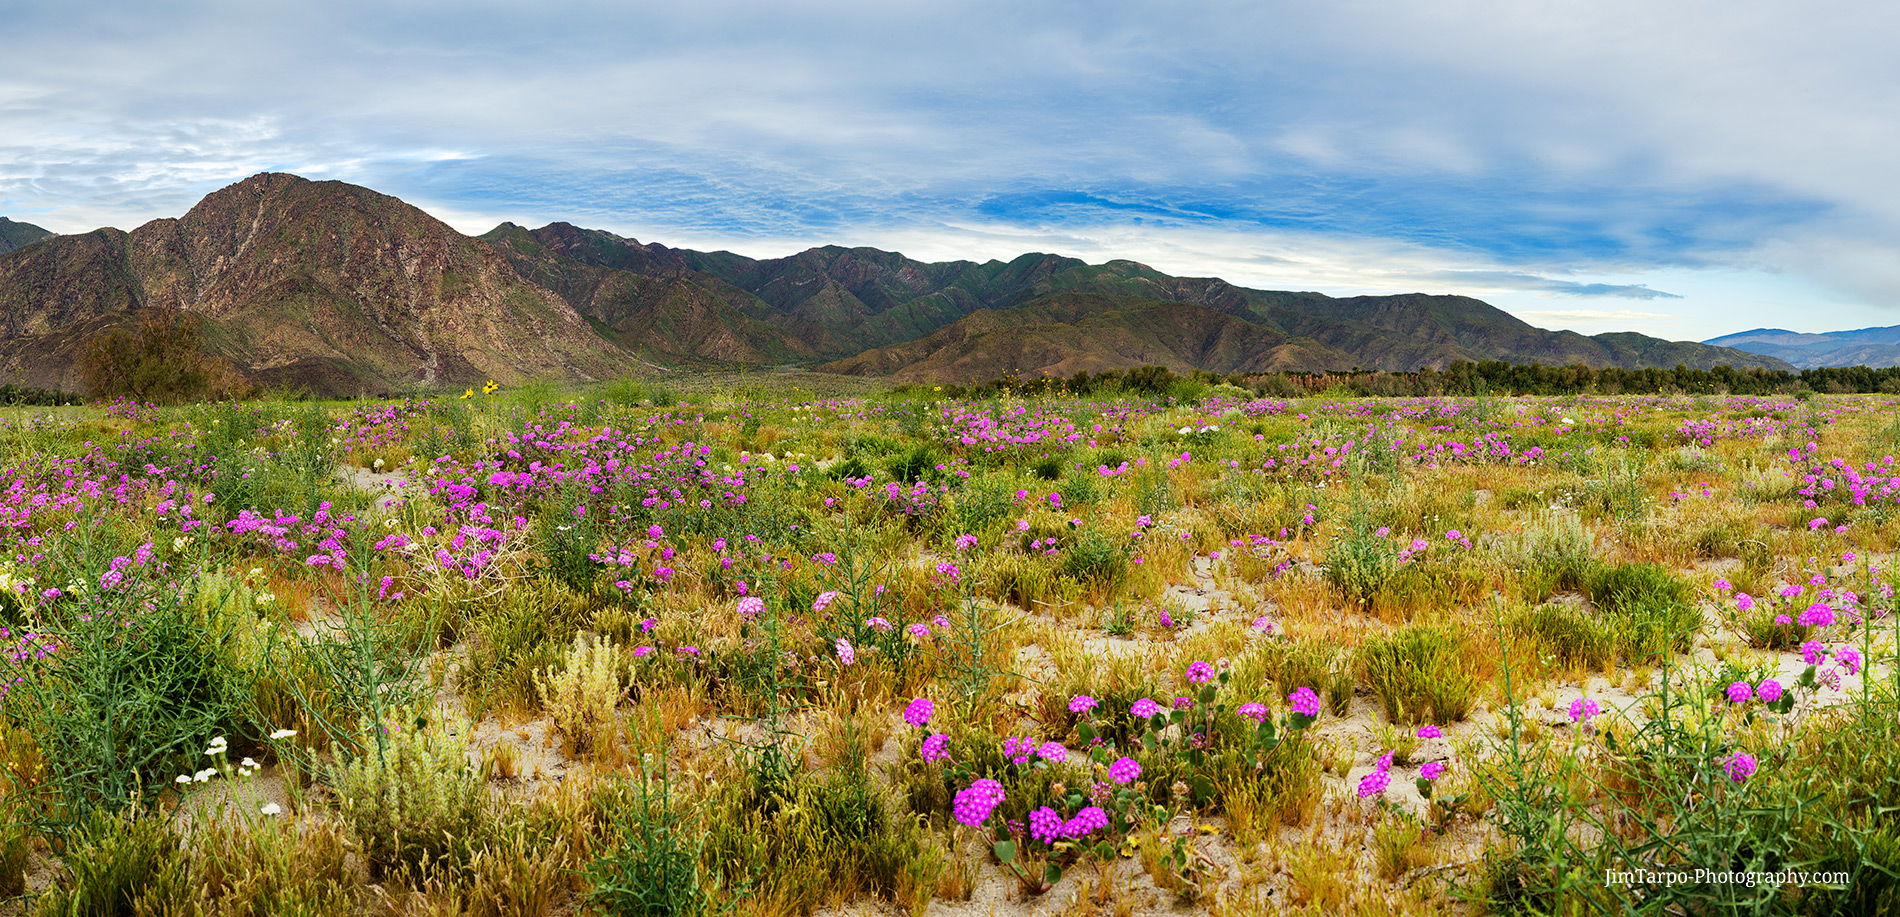 landscape-flowers-desert-borrego-bloom-superbloom